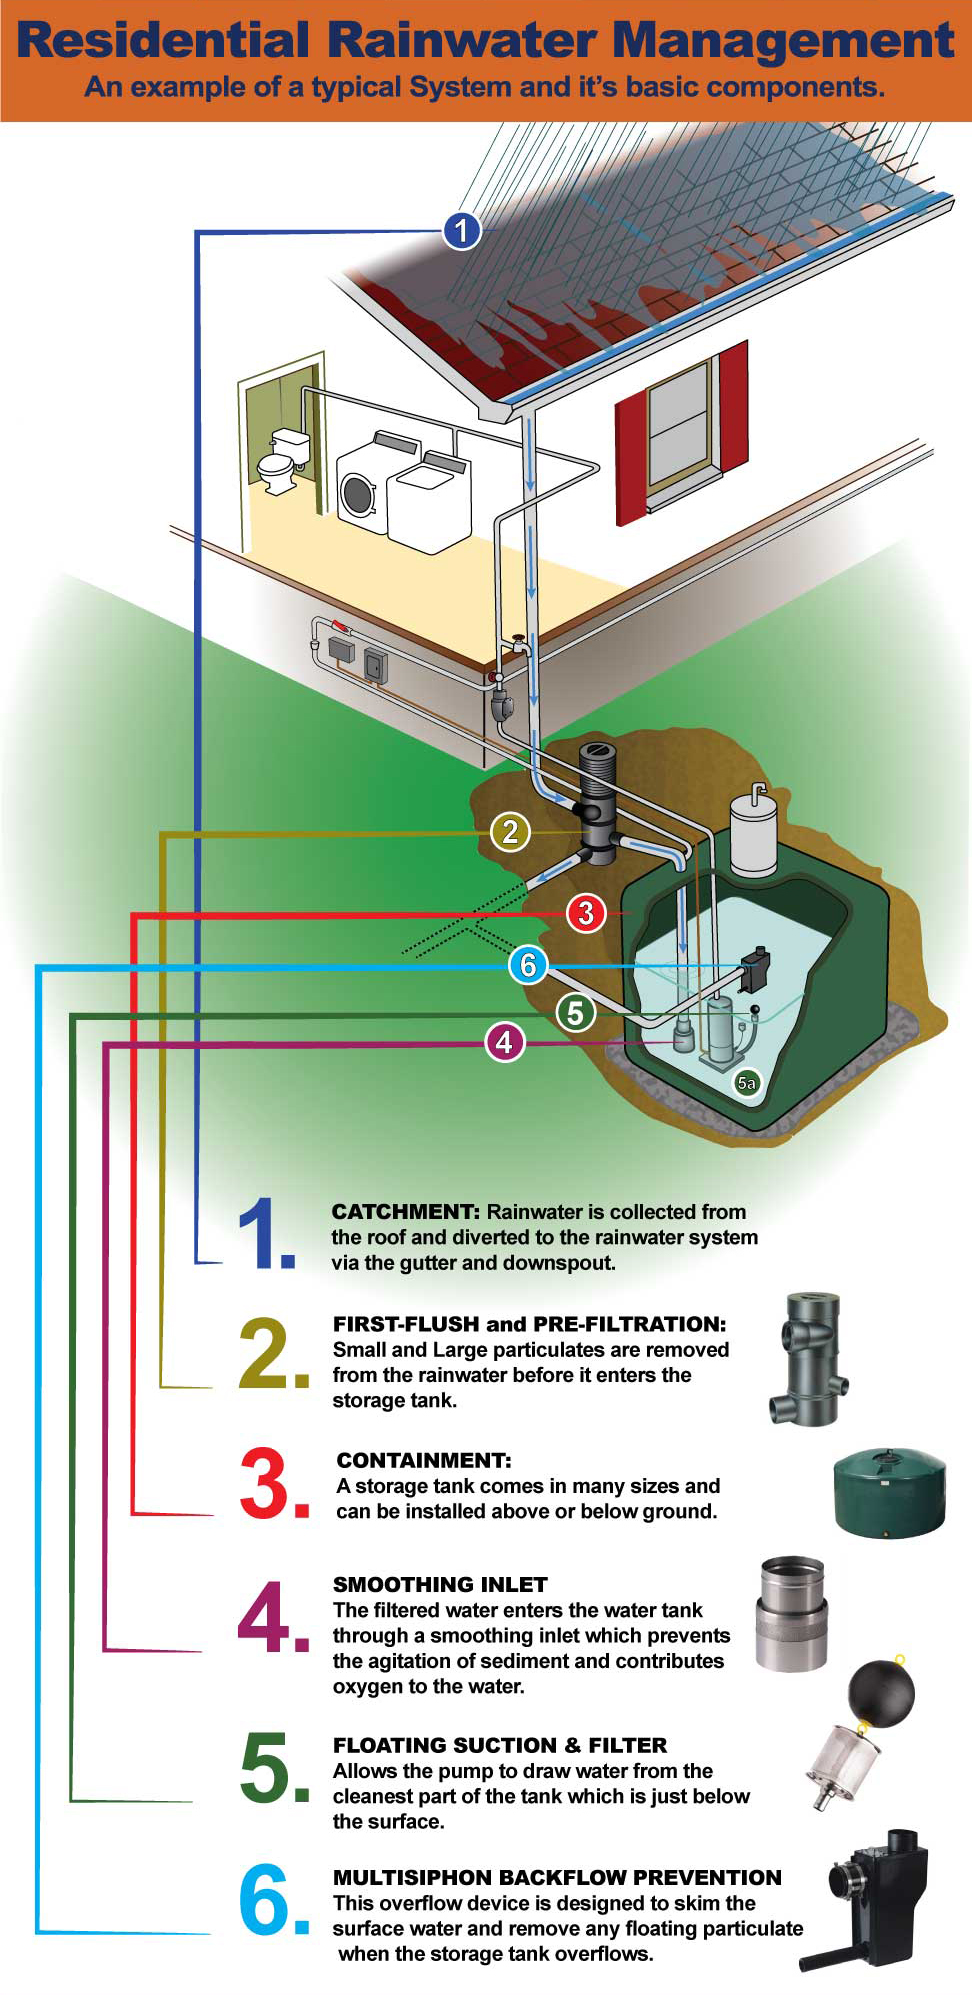 Basic Rainwater Harvesting System And Its Components